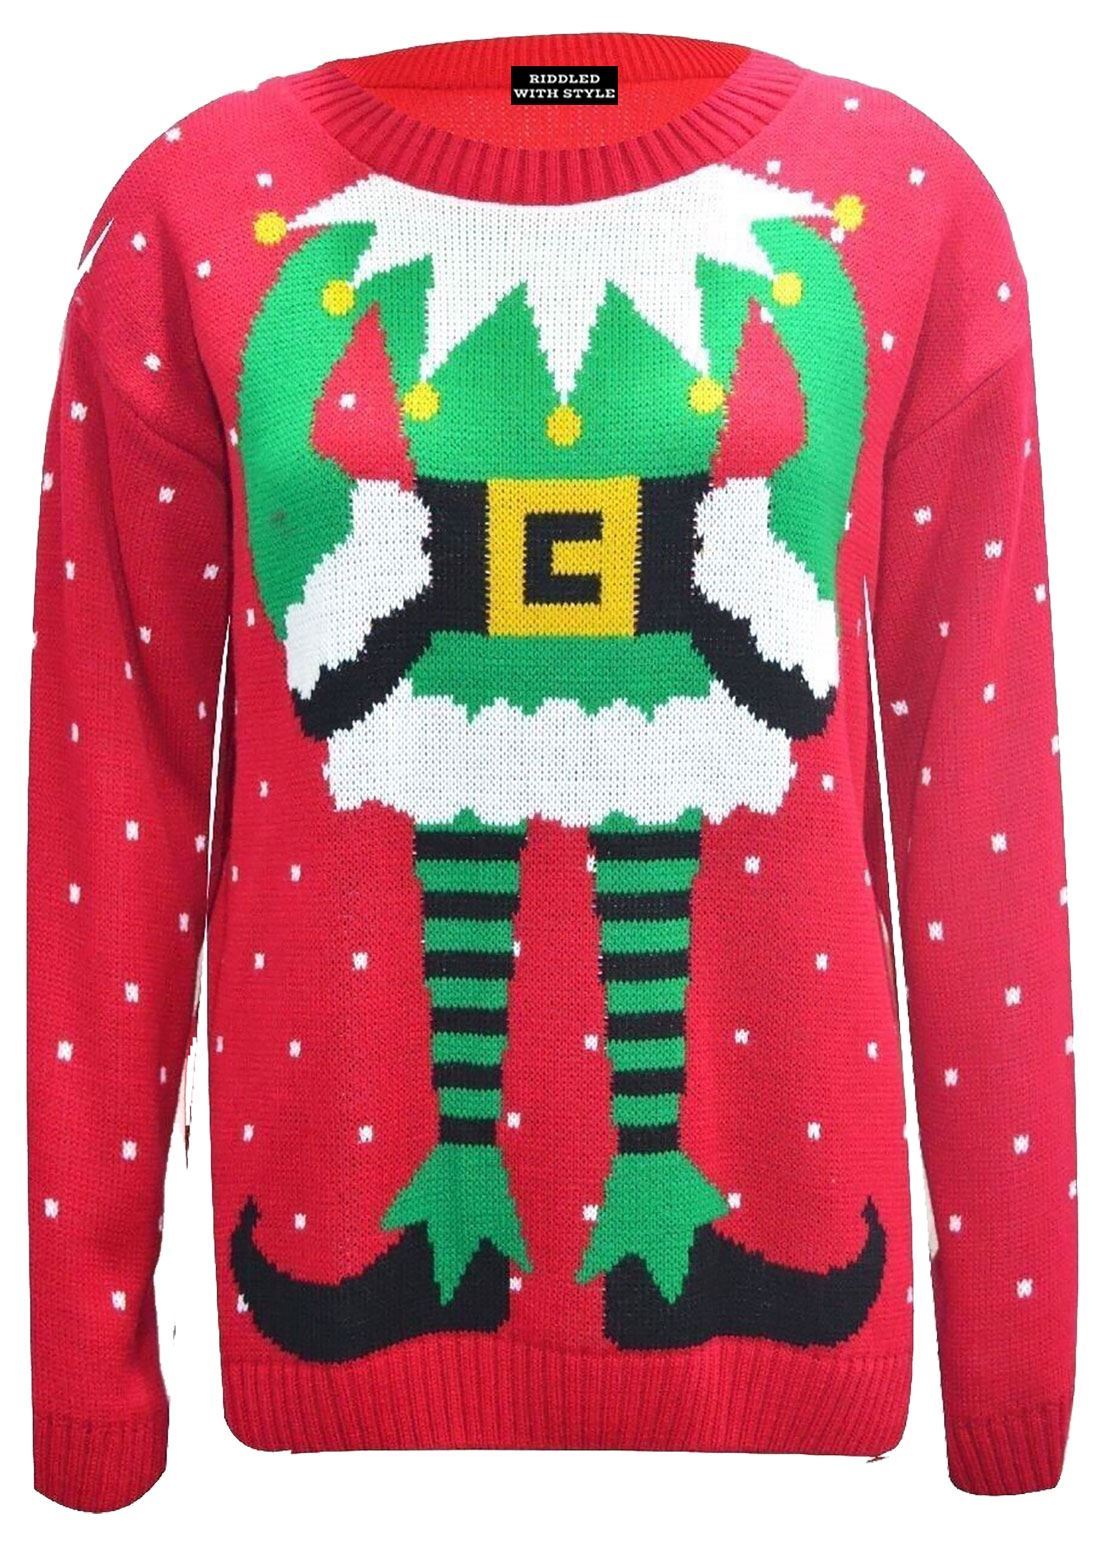 Find great deals on eBay for Womens Long Christmas Jumper in Women's Clothing and Sweaters. Shop with confidence.